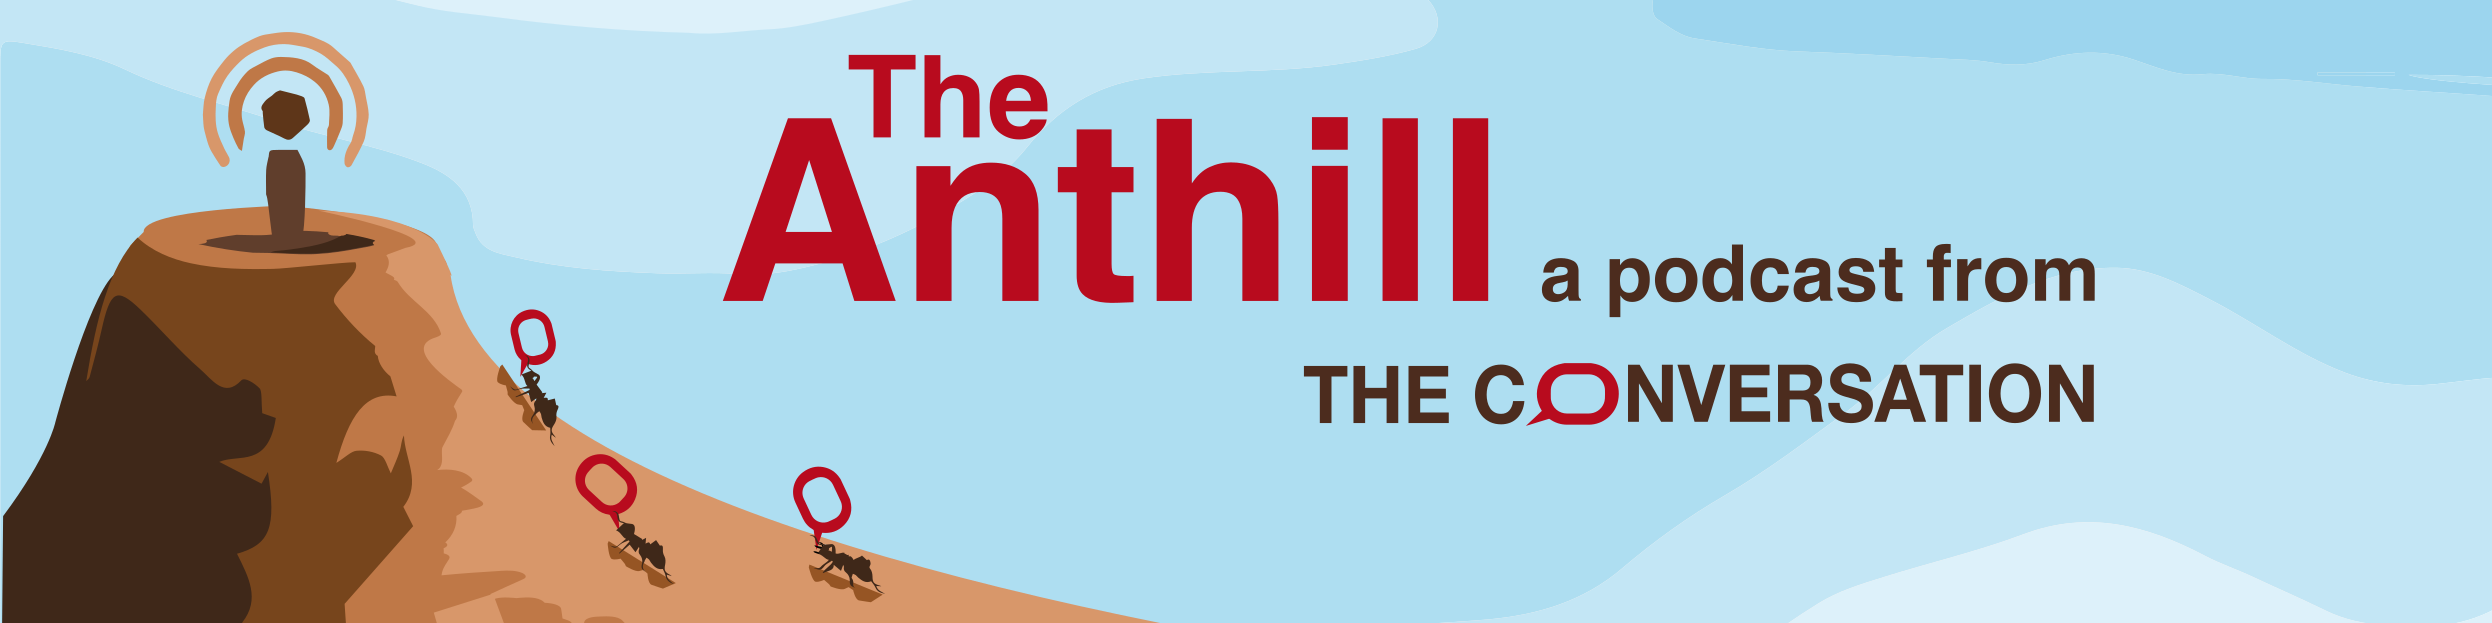 Podcast: The Anthill